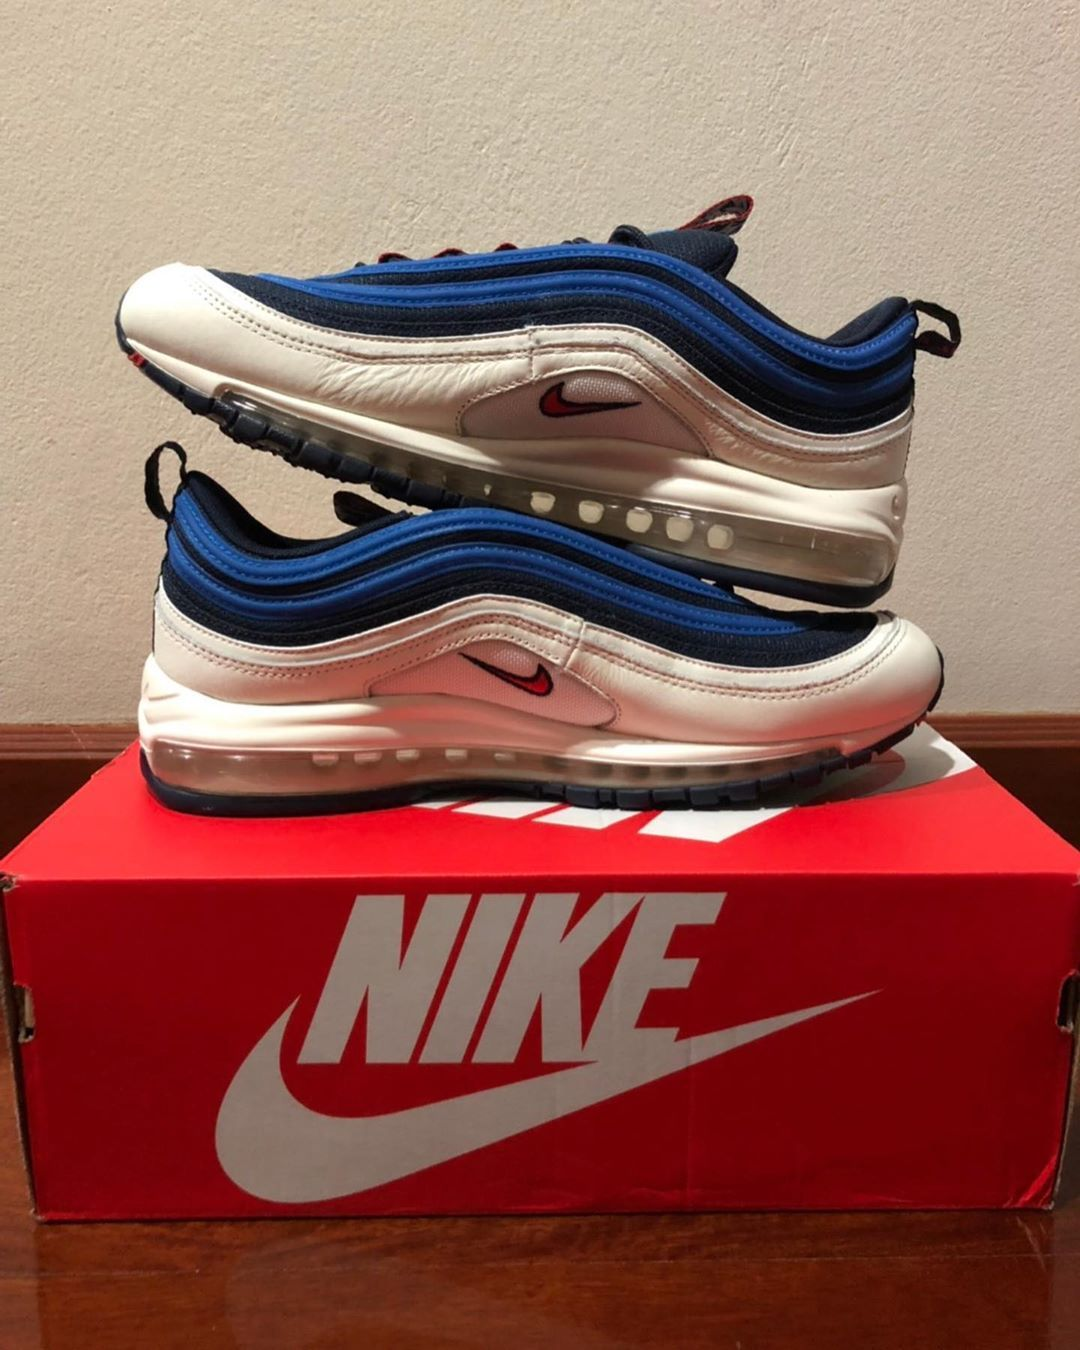 Nike air max 97 size 28.5cm new with